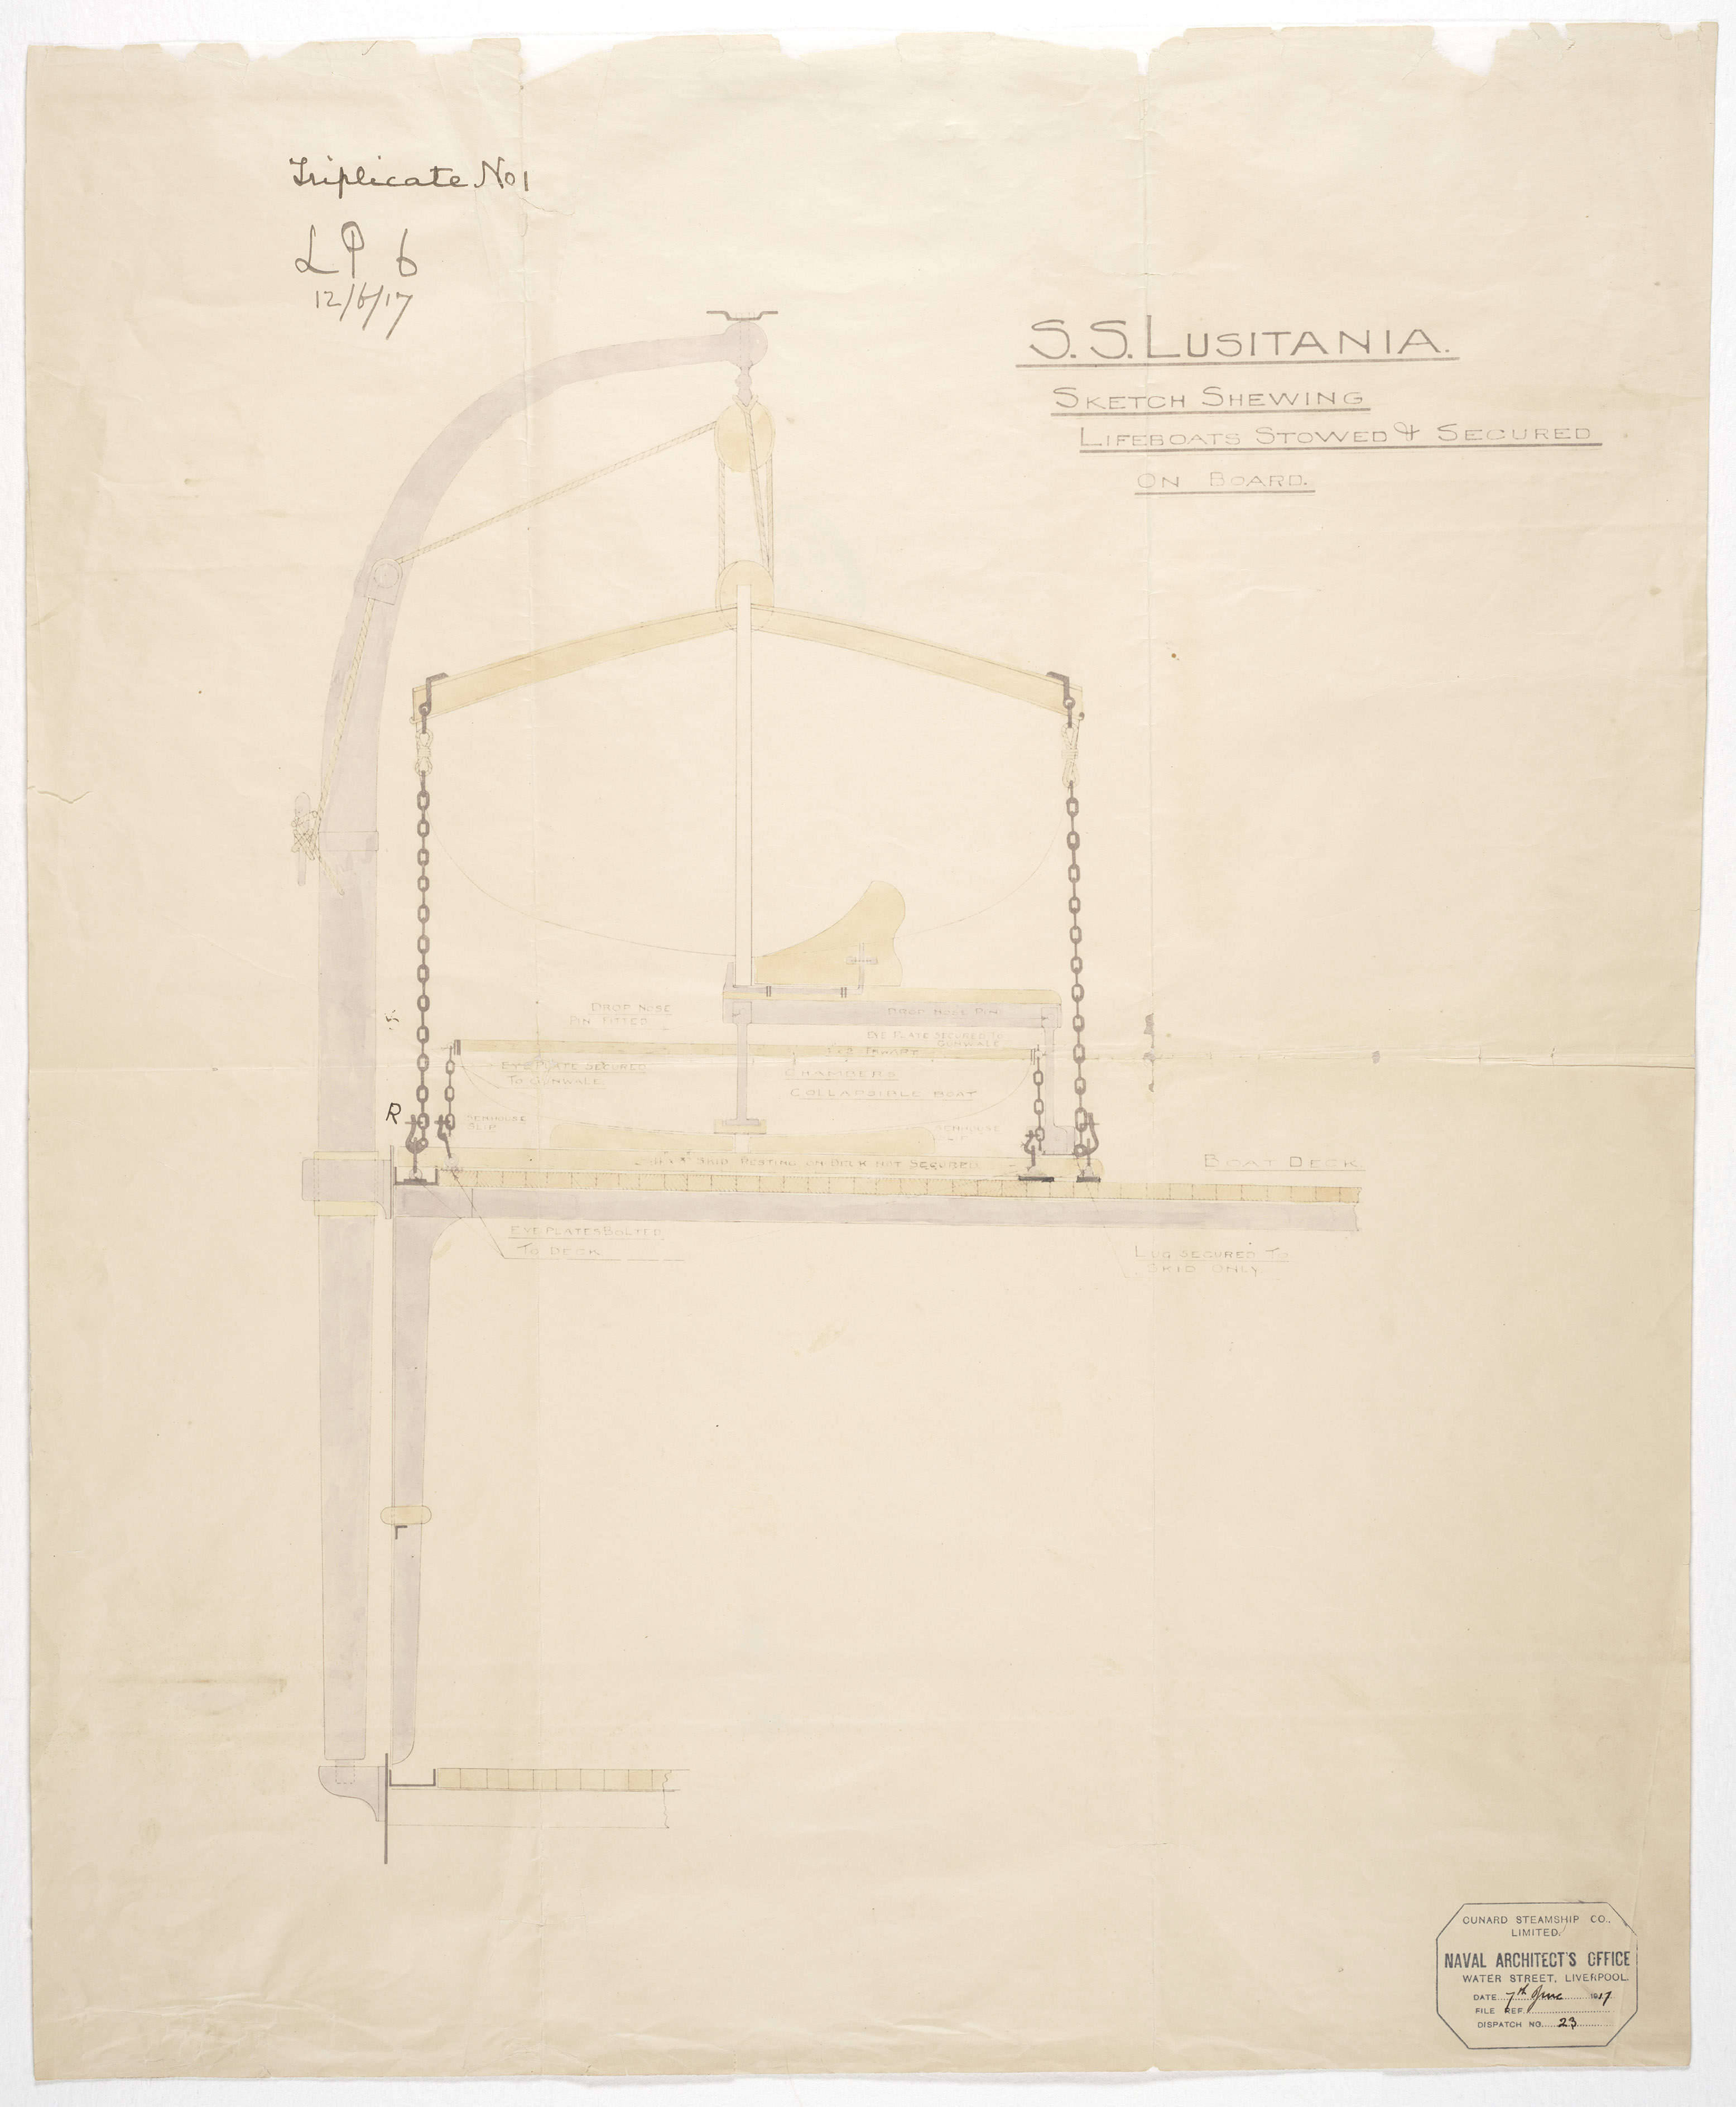 Sketch Showing Lifeboats Stowed and Secured on Board the RMS. Lusitania, 12/6/1917. National Archives Identifier 17369675